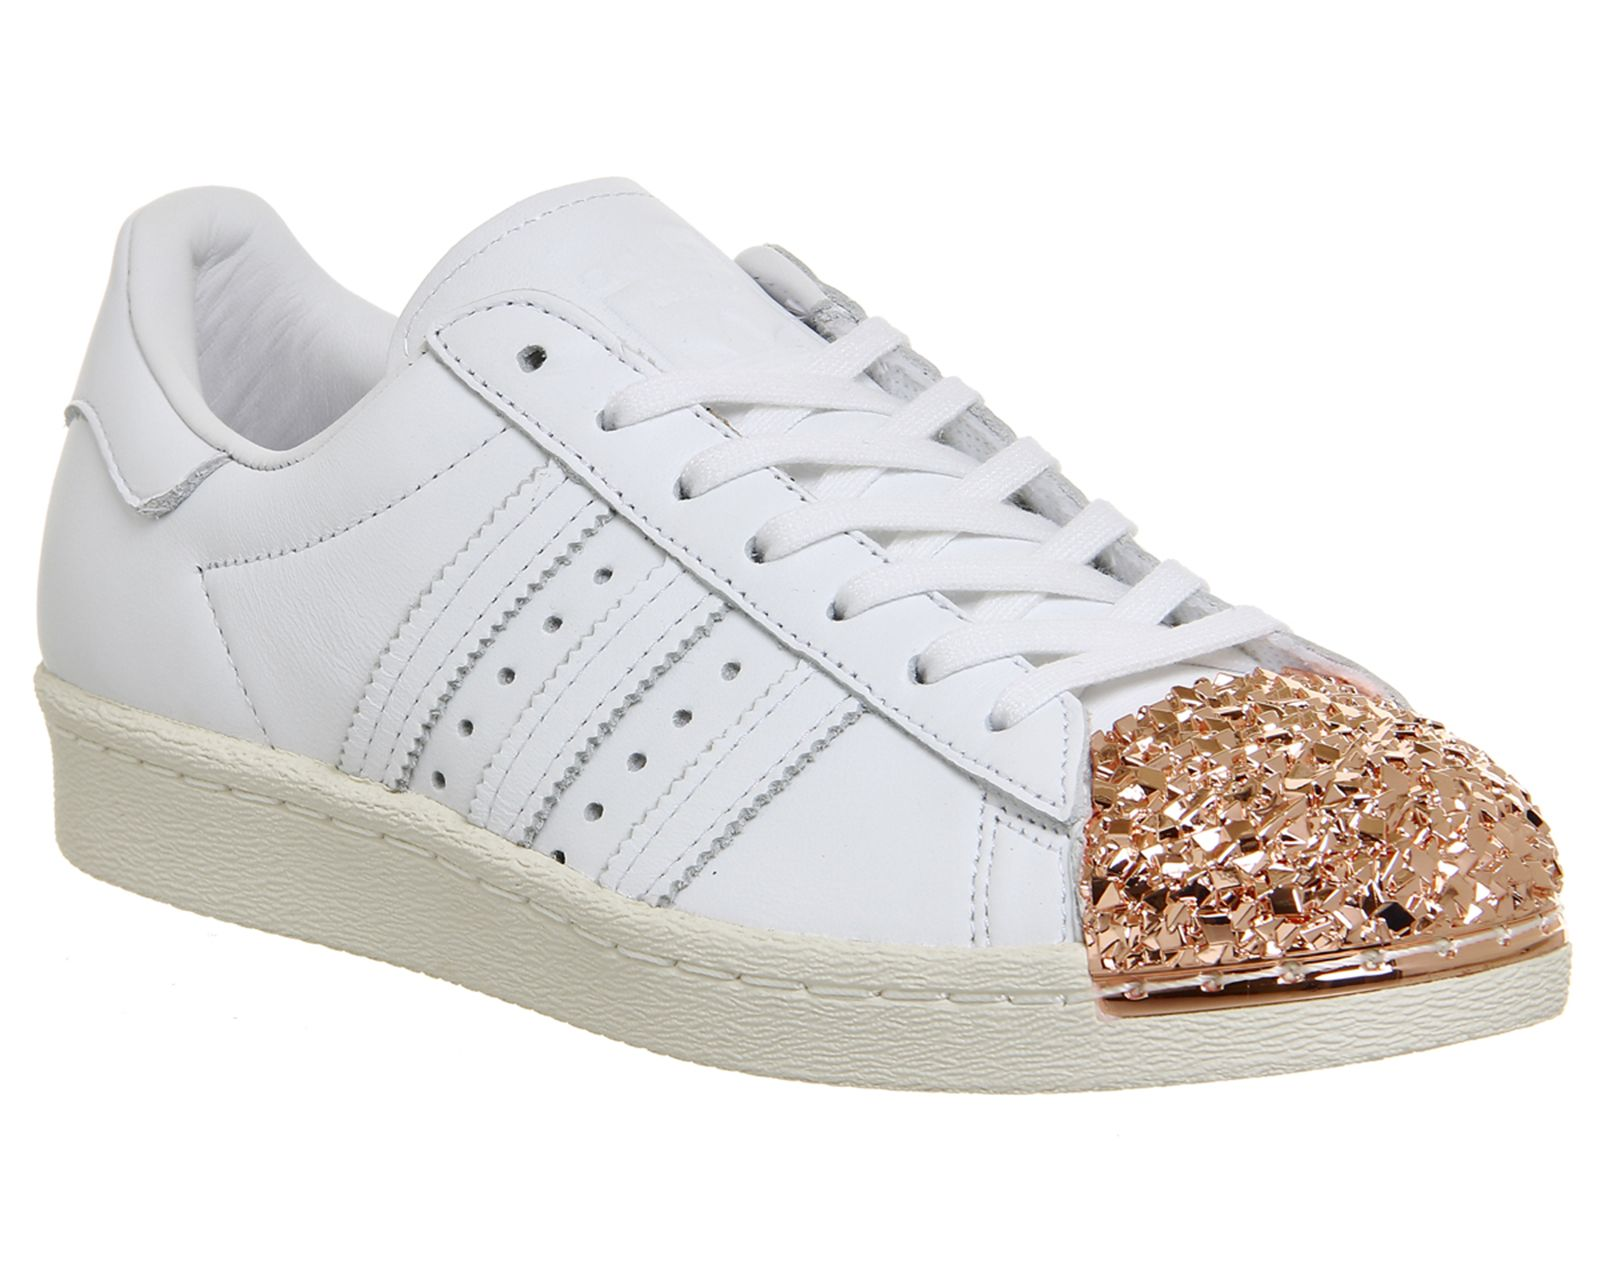 adidas originals with rose gold